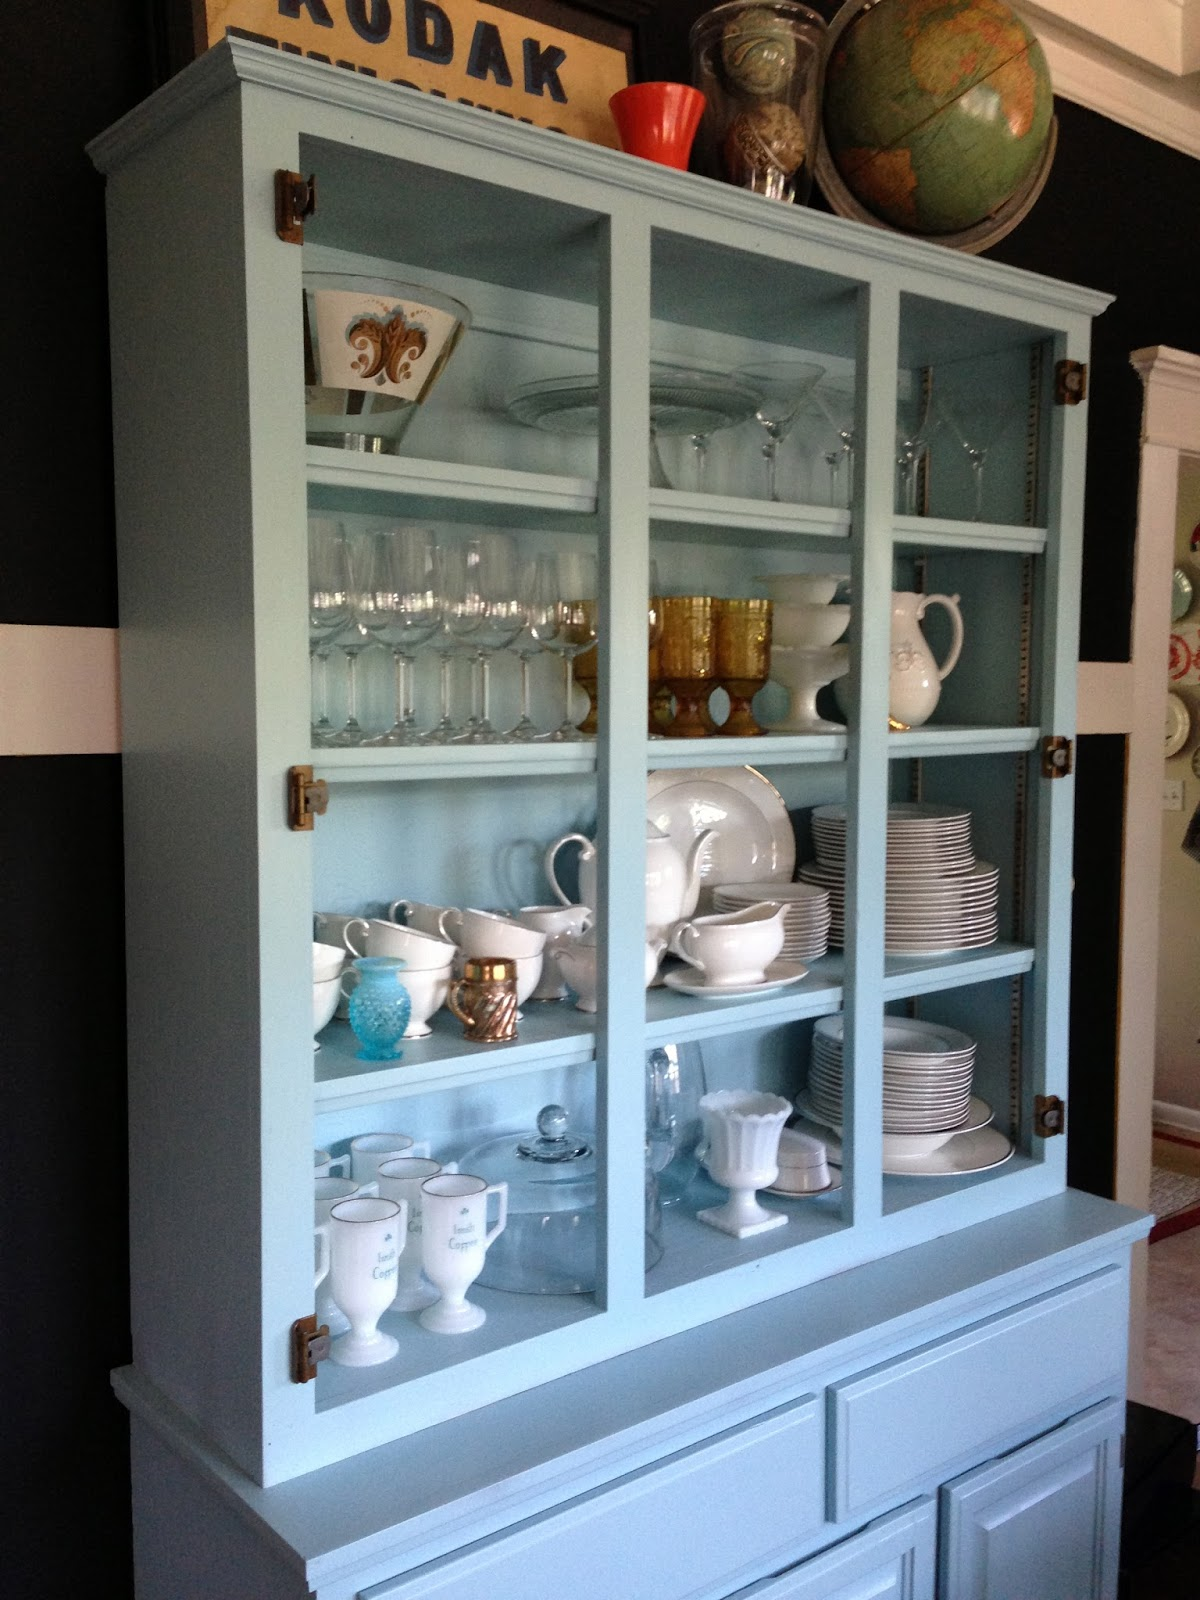 Furniture furthermore dining room china cabi ethan allen furniture on - Below Is A Shot Before We Put The Glass Doors On In Case You Wanted A Better Look At My China And Knick Knacks View Into Kitchen From Dining Room